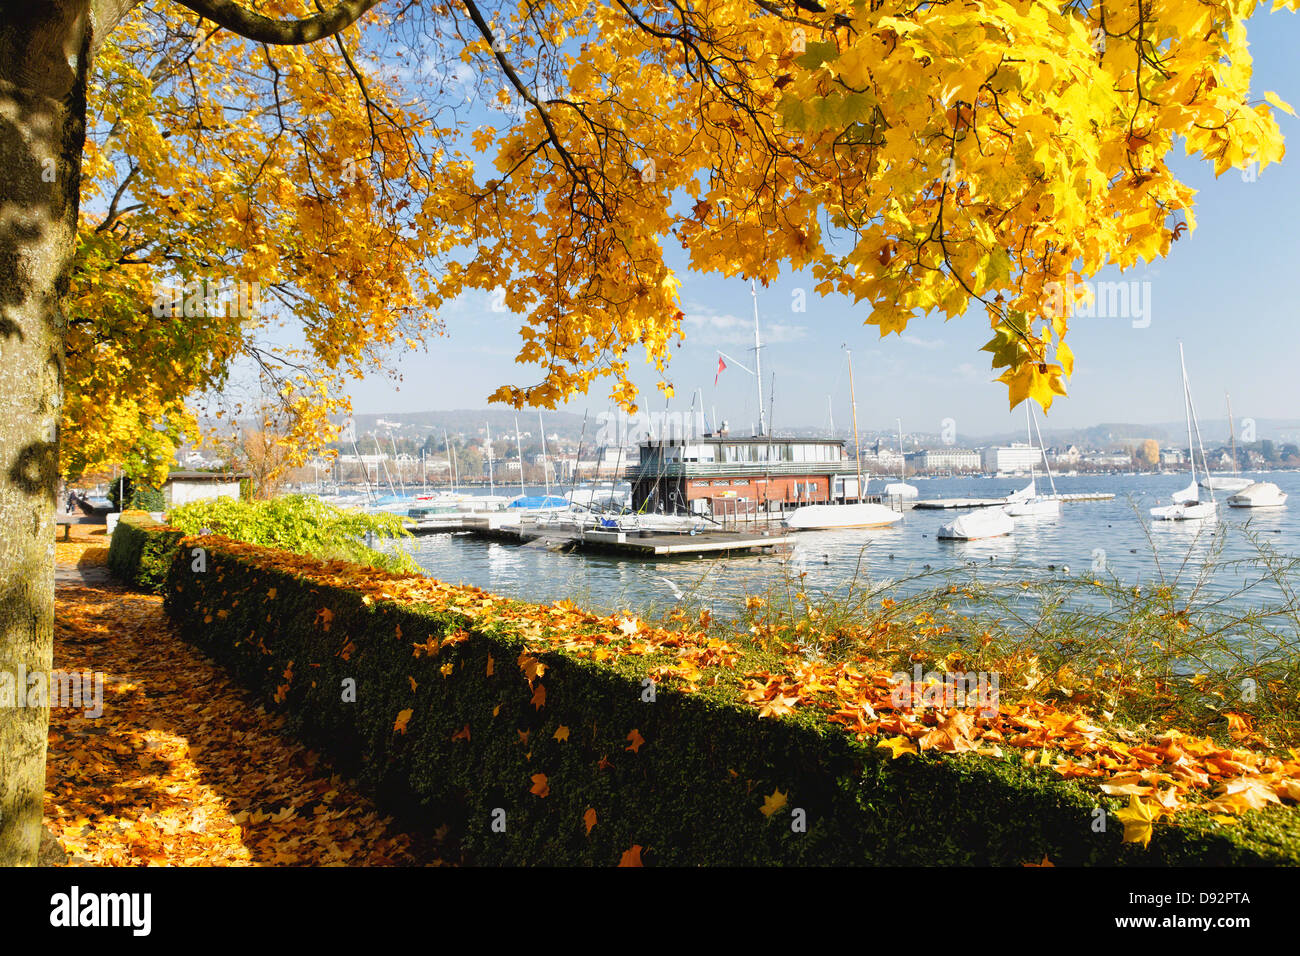 Sunny Autumn Day at Lake Zurich, Zurich, Switzerland - Stock Image